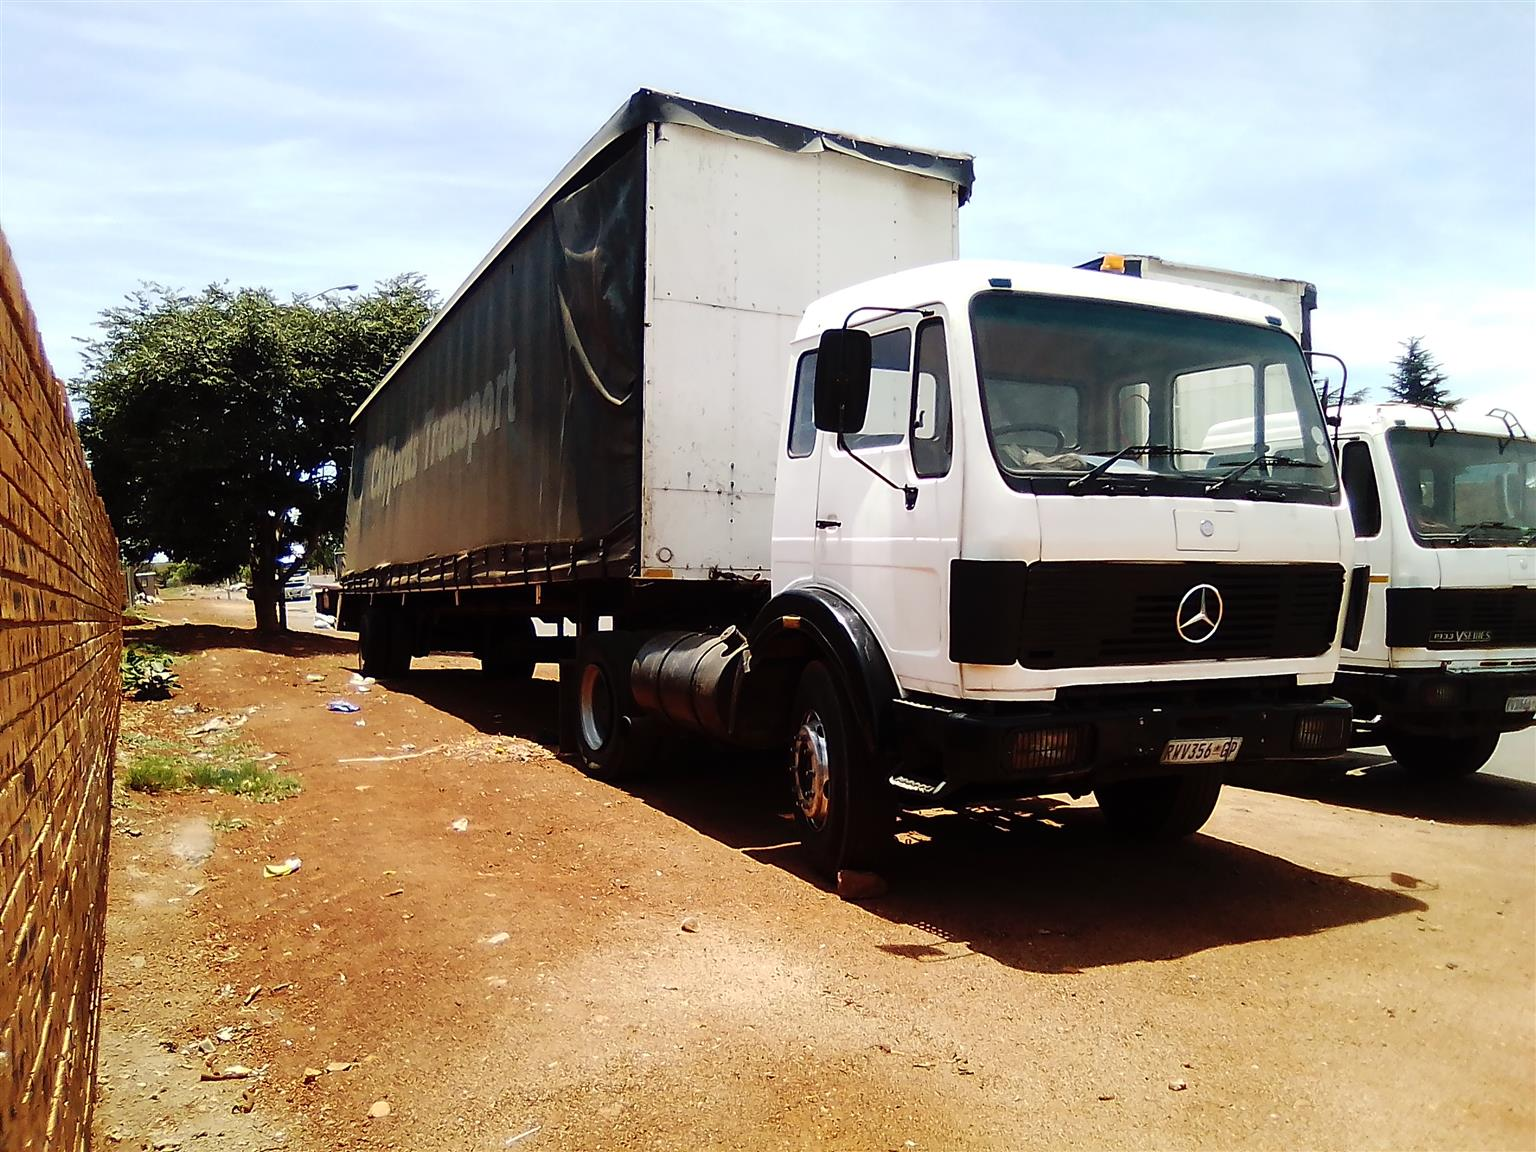 Mercedes Benz truck and trailer with work